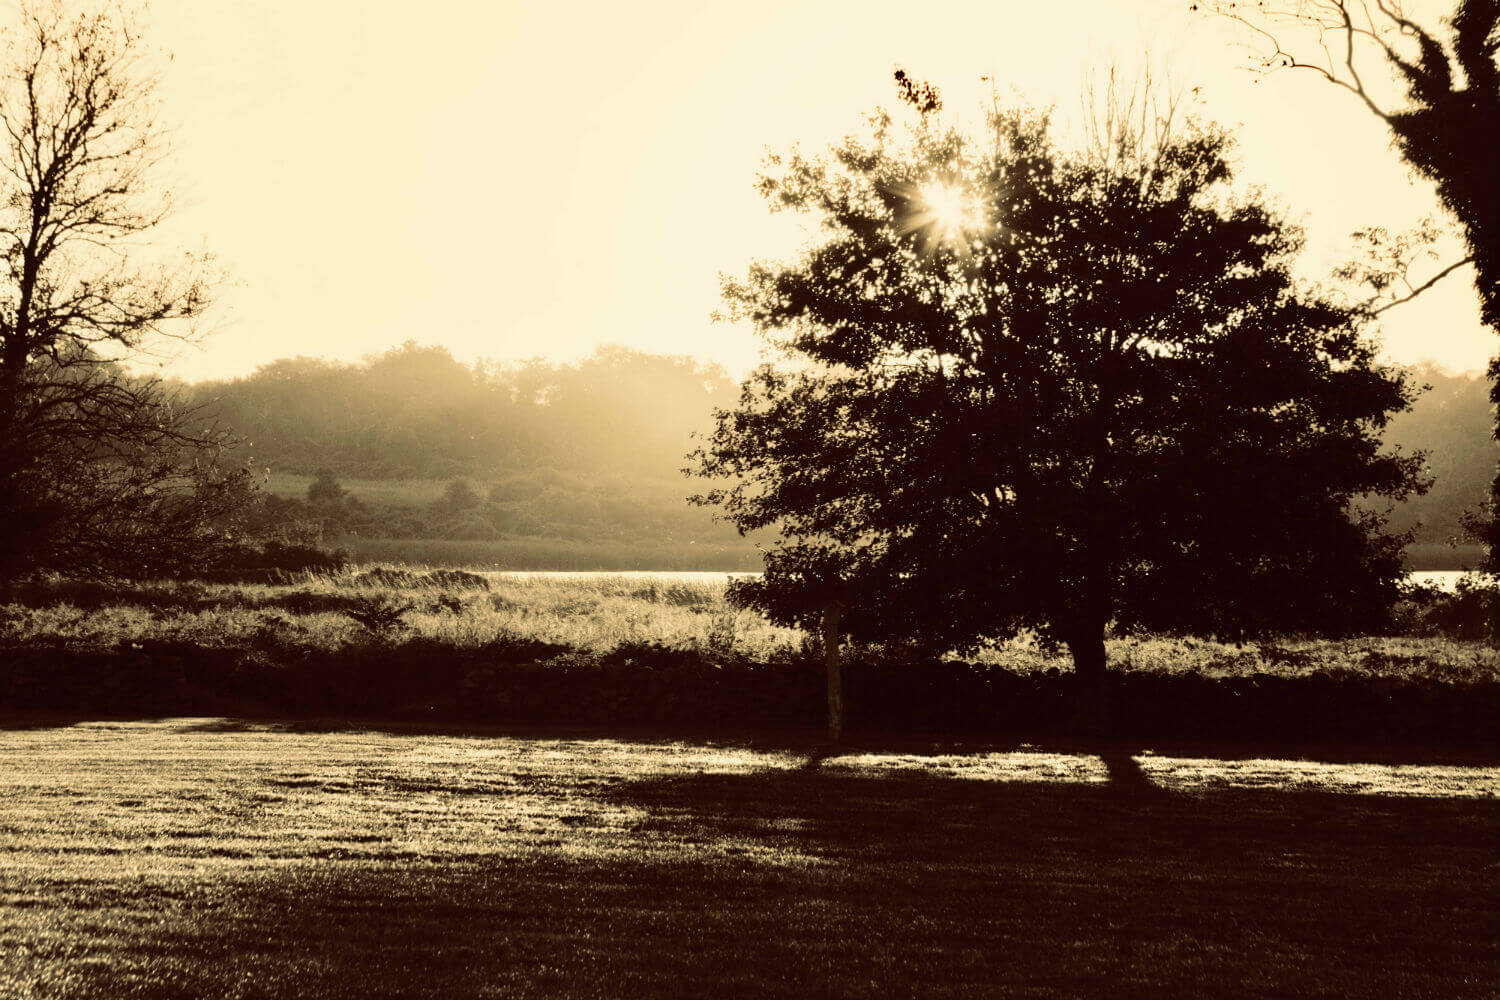 "Morning Light, 19"" x 29"" sepia river and trees liz fiedorek fine art photography ny rhode island"